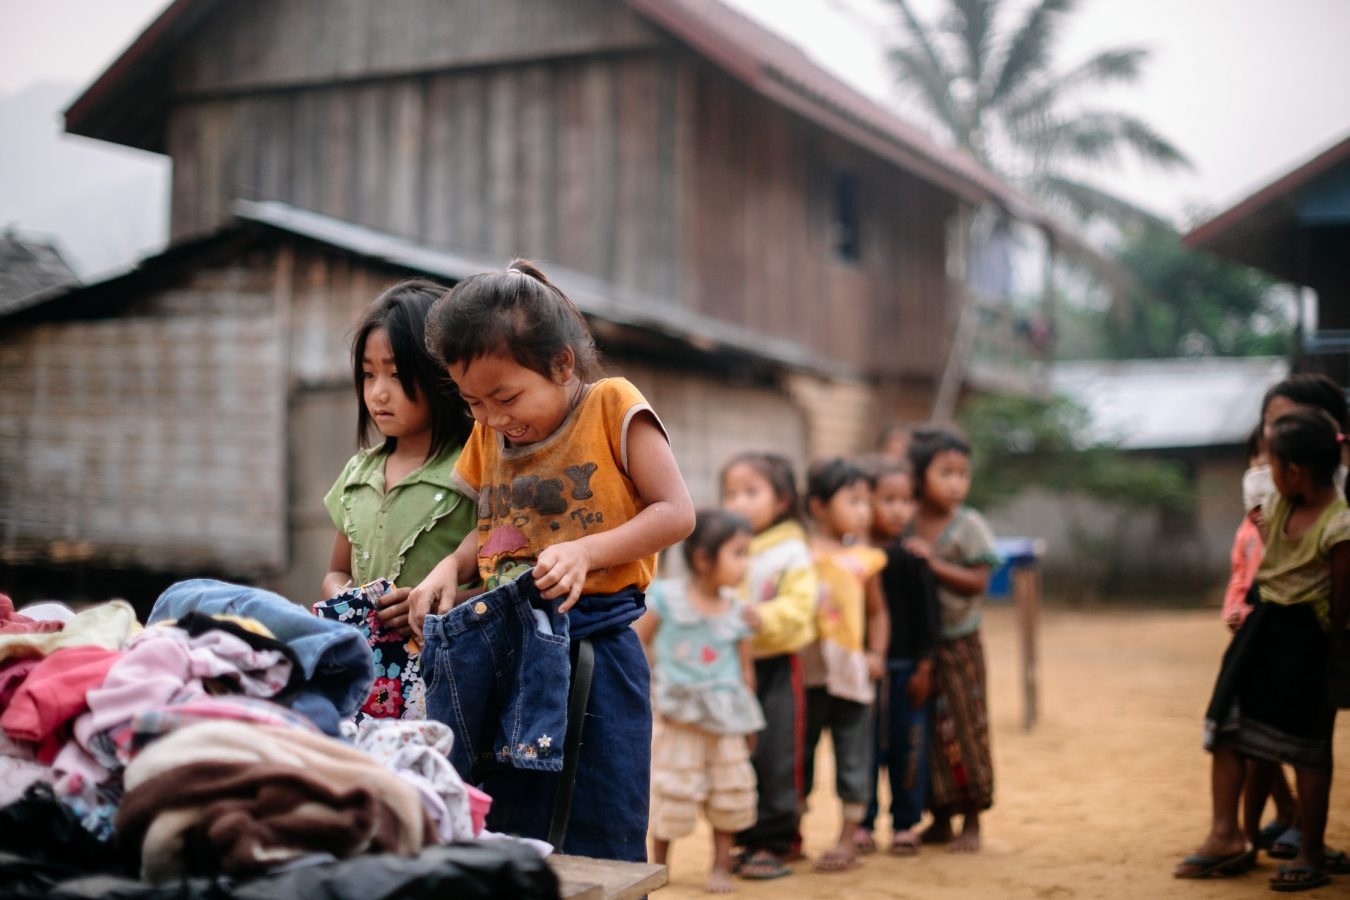 little girl picks out jeans and smiles in Laos photo